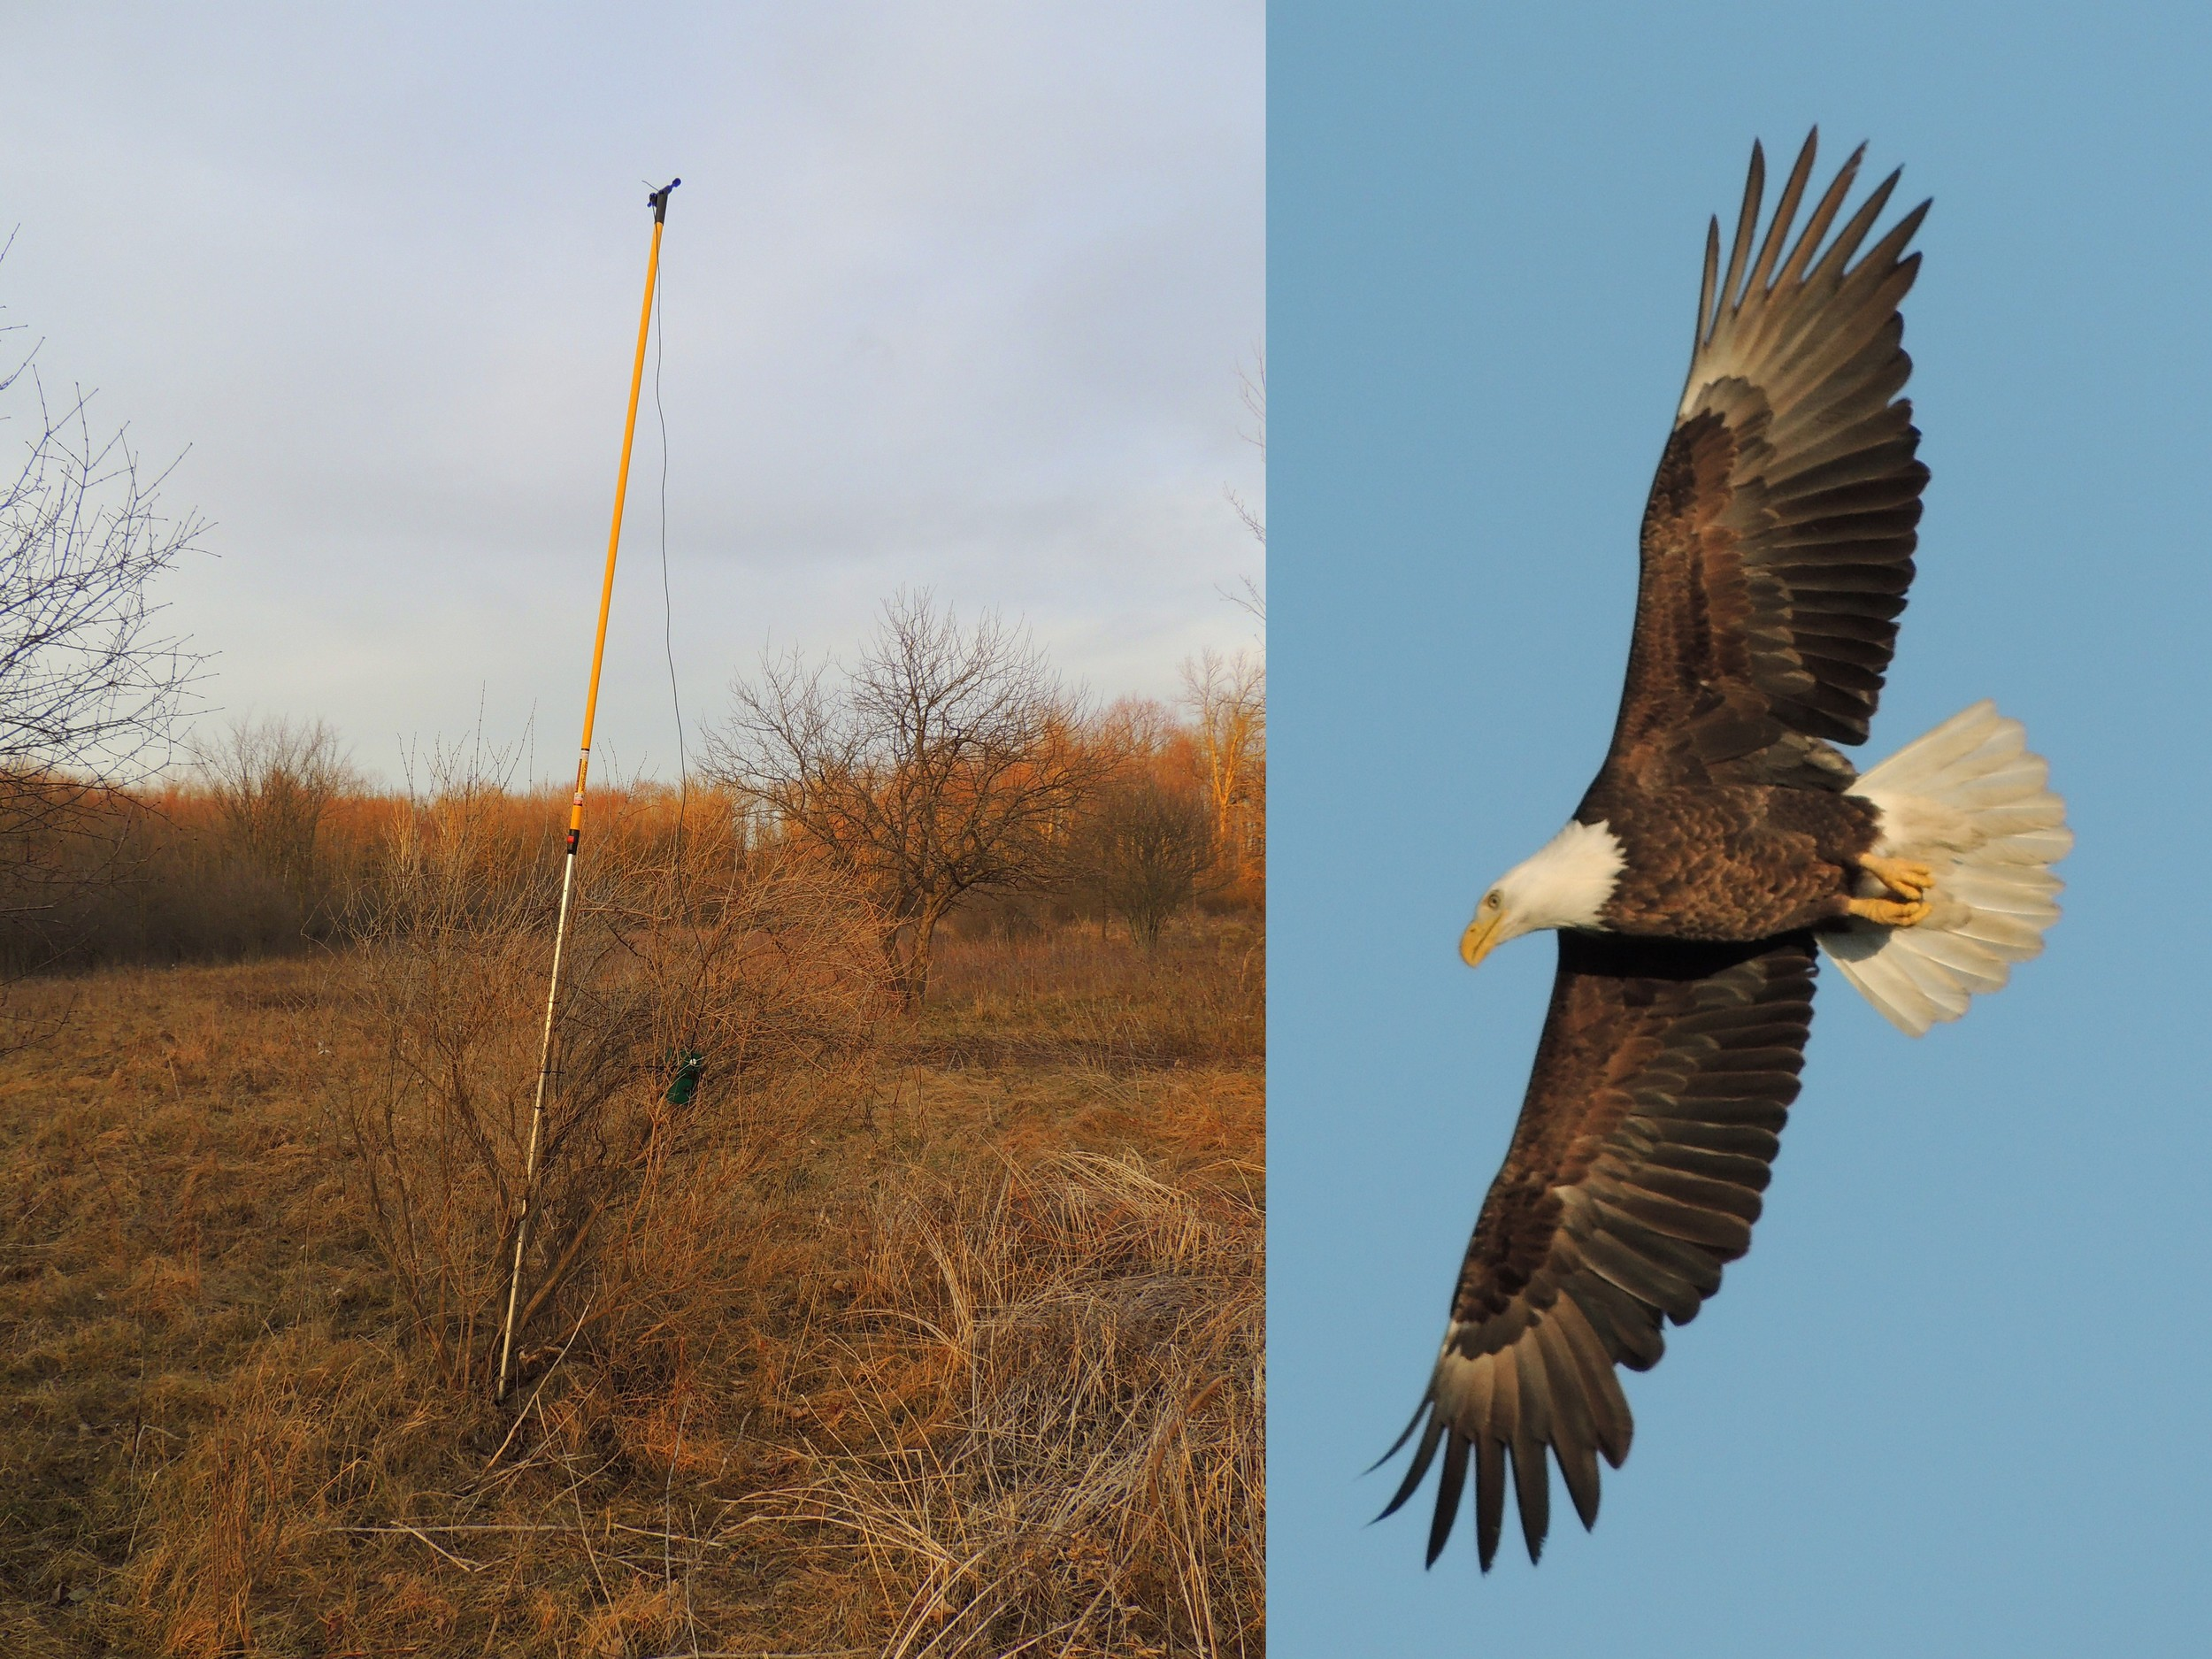 from left: Bat Passive Ultrasonic Recorder, Bald Eagle (Special Concern) in Flight